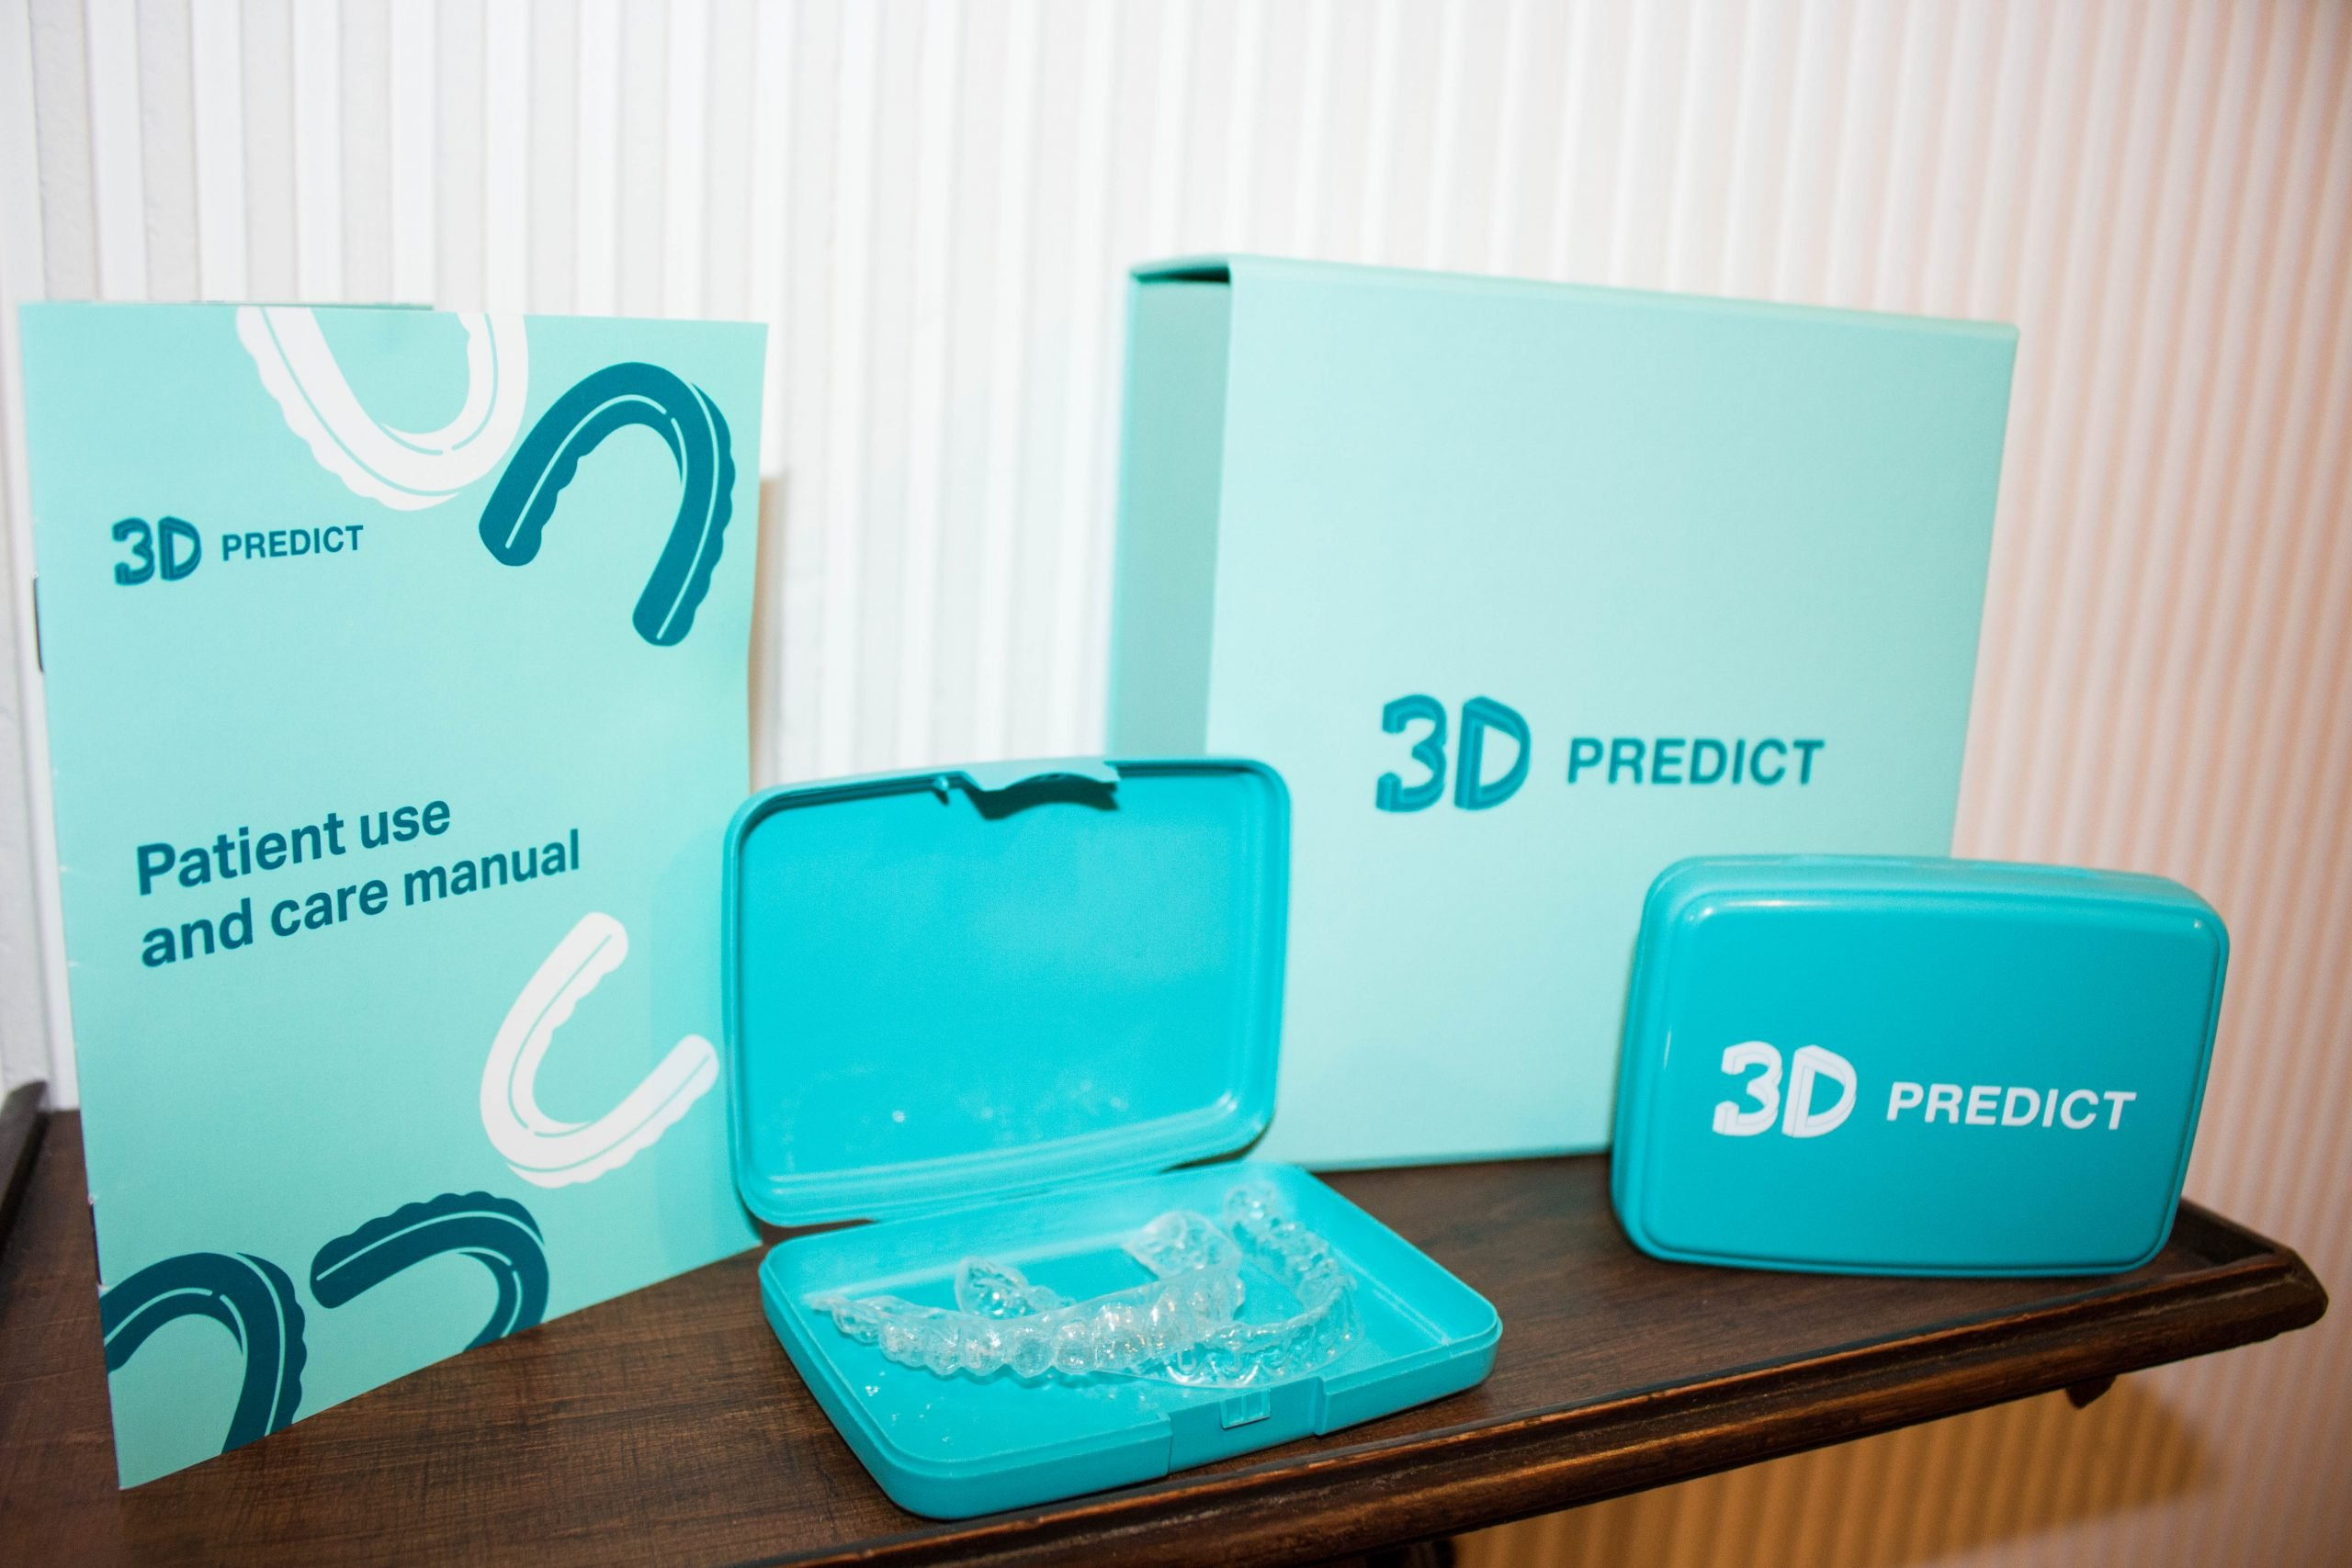 3D Predict tooth aligners